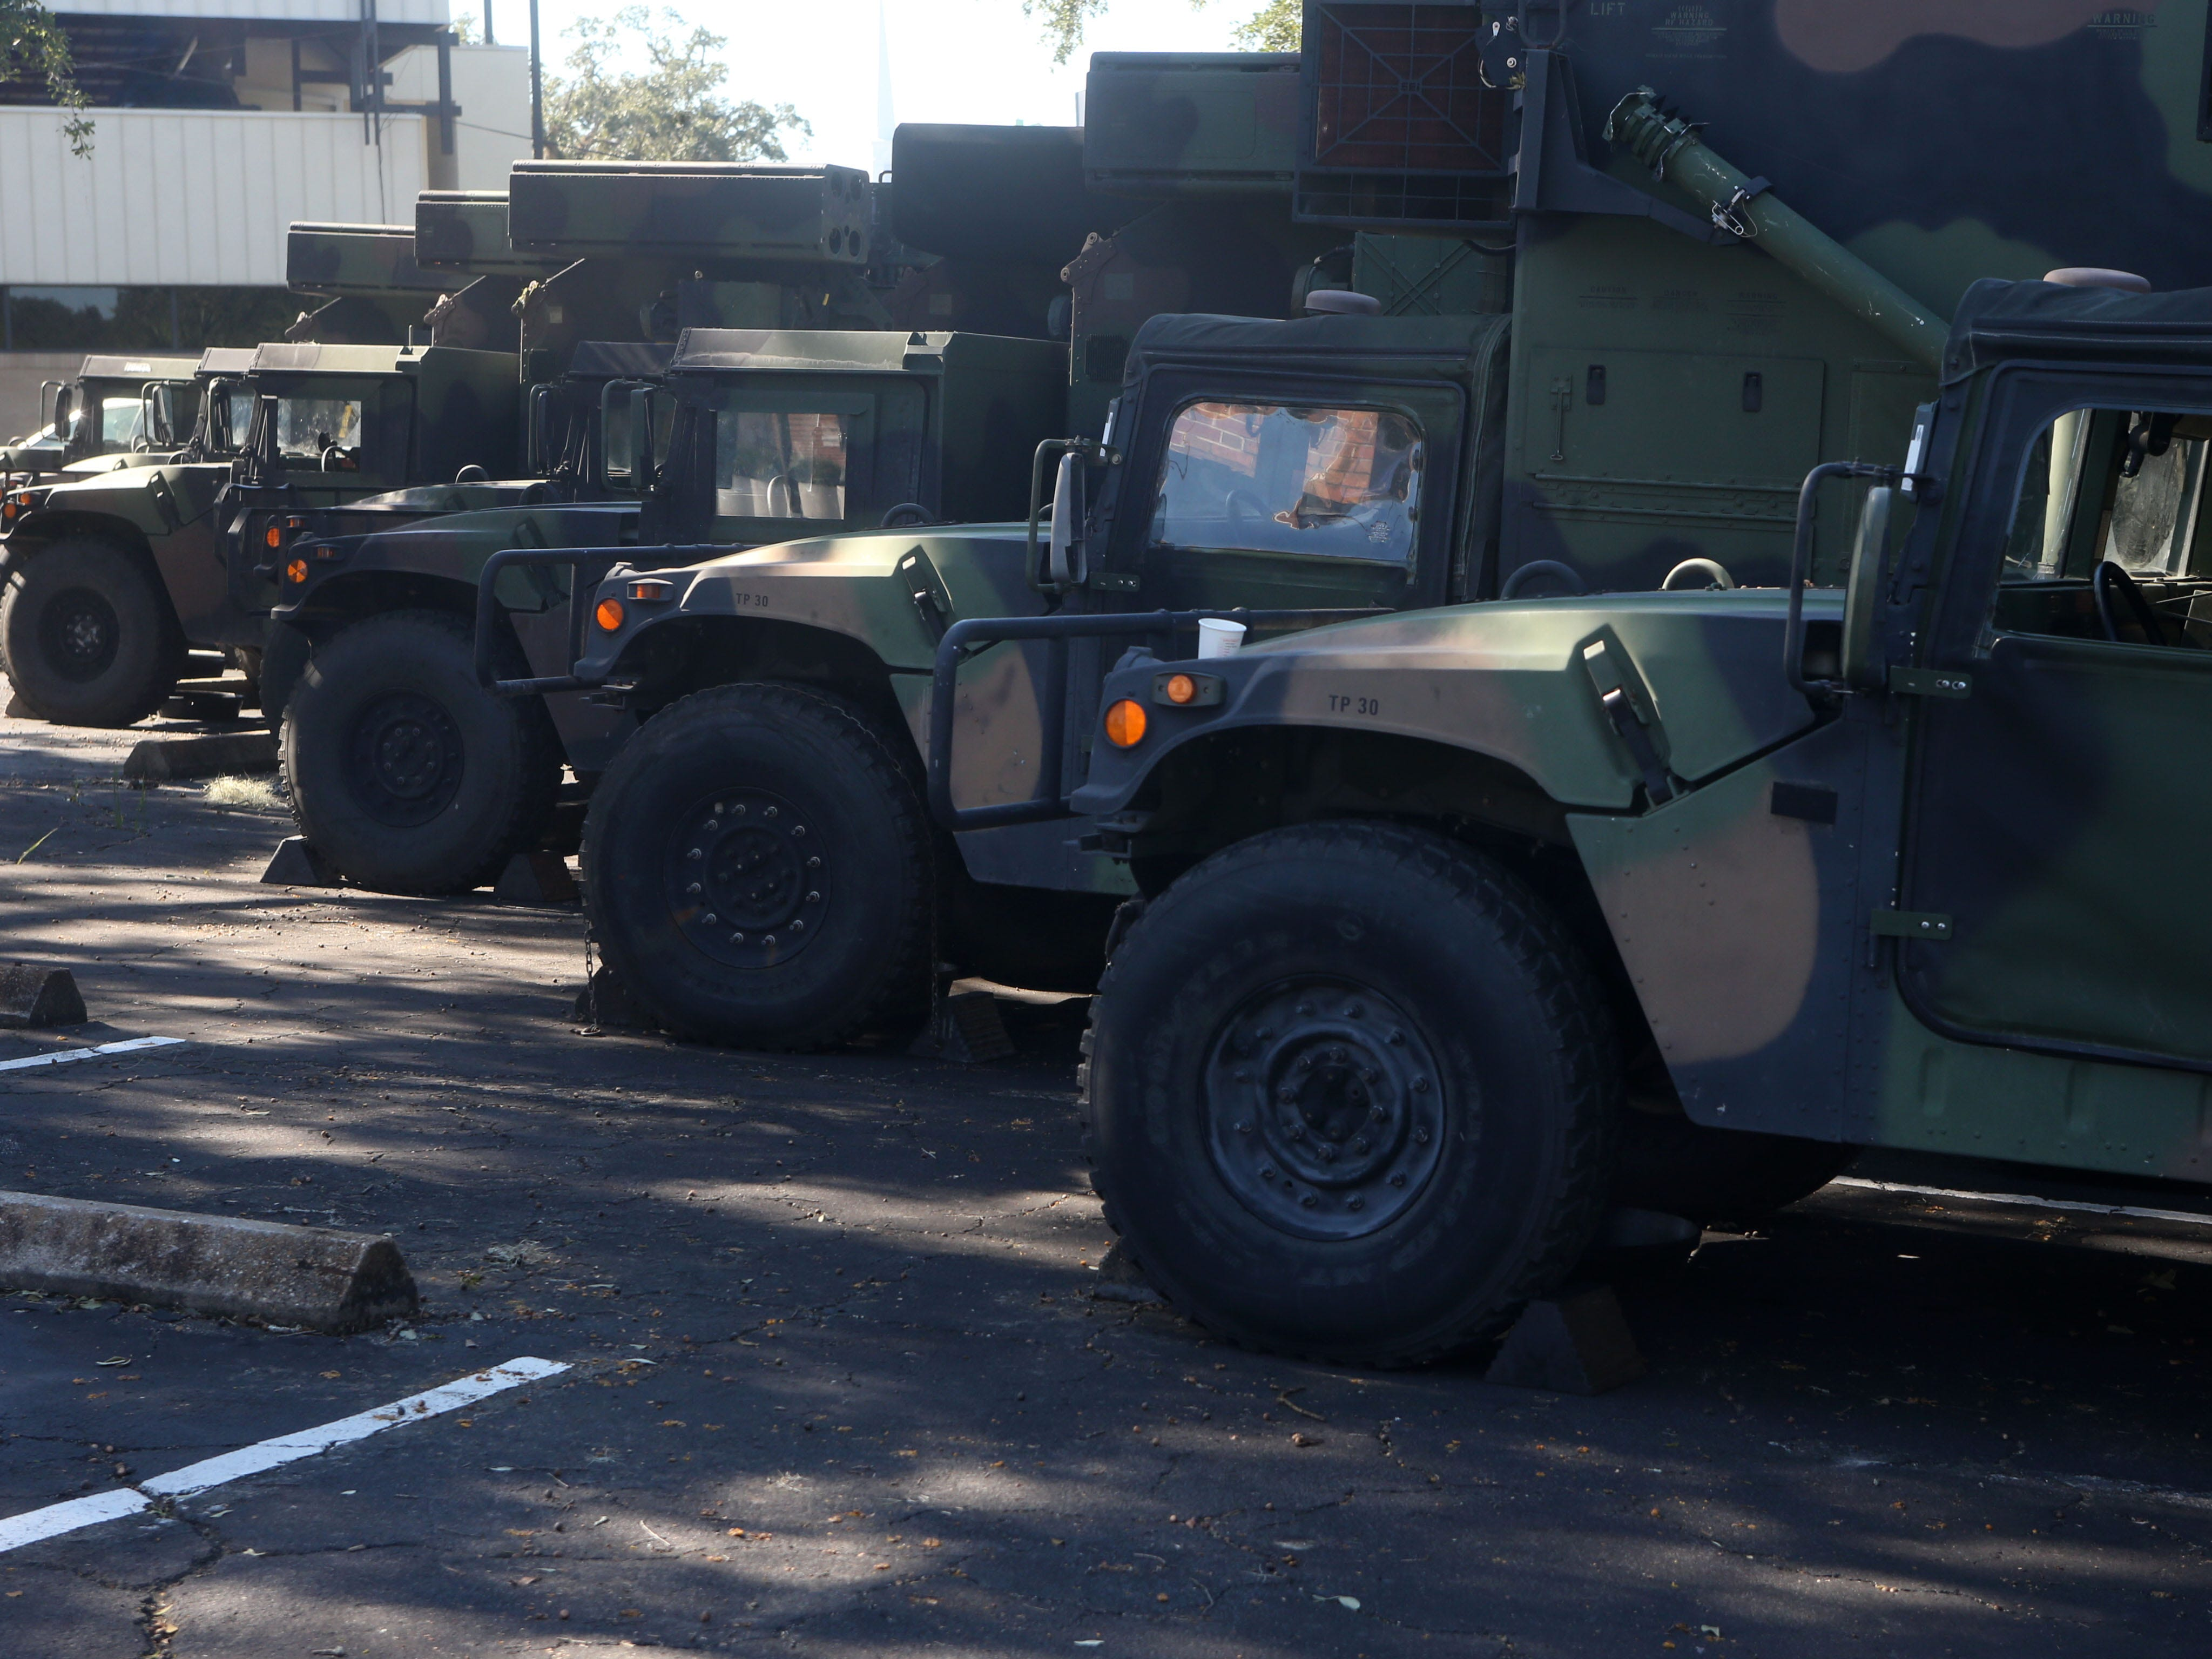 The National Guard, stationed throughout Tallahassee hands out ice, water, and meals ready to eat on Oct. 13, 2018, three days after Hurricane Michael struck the Florida panhandle.